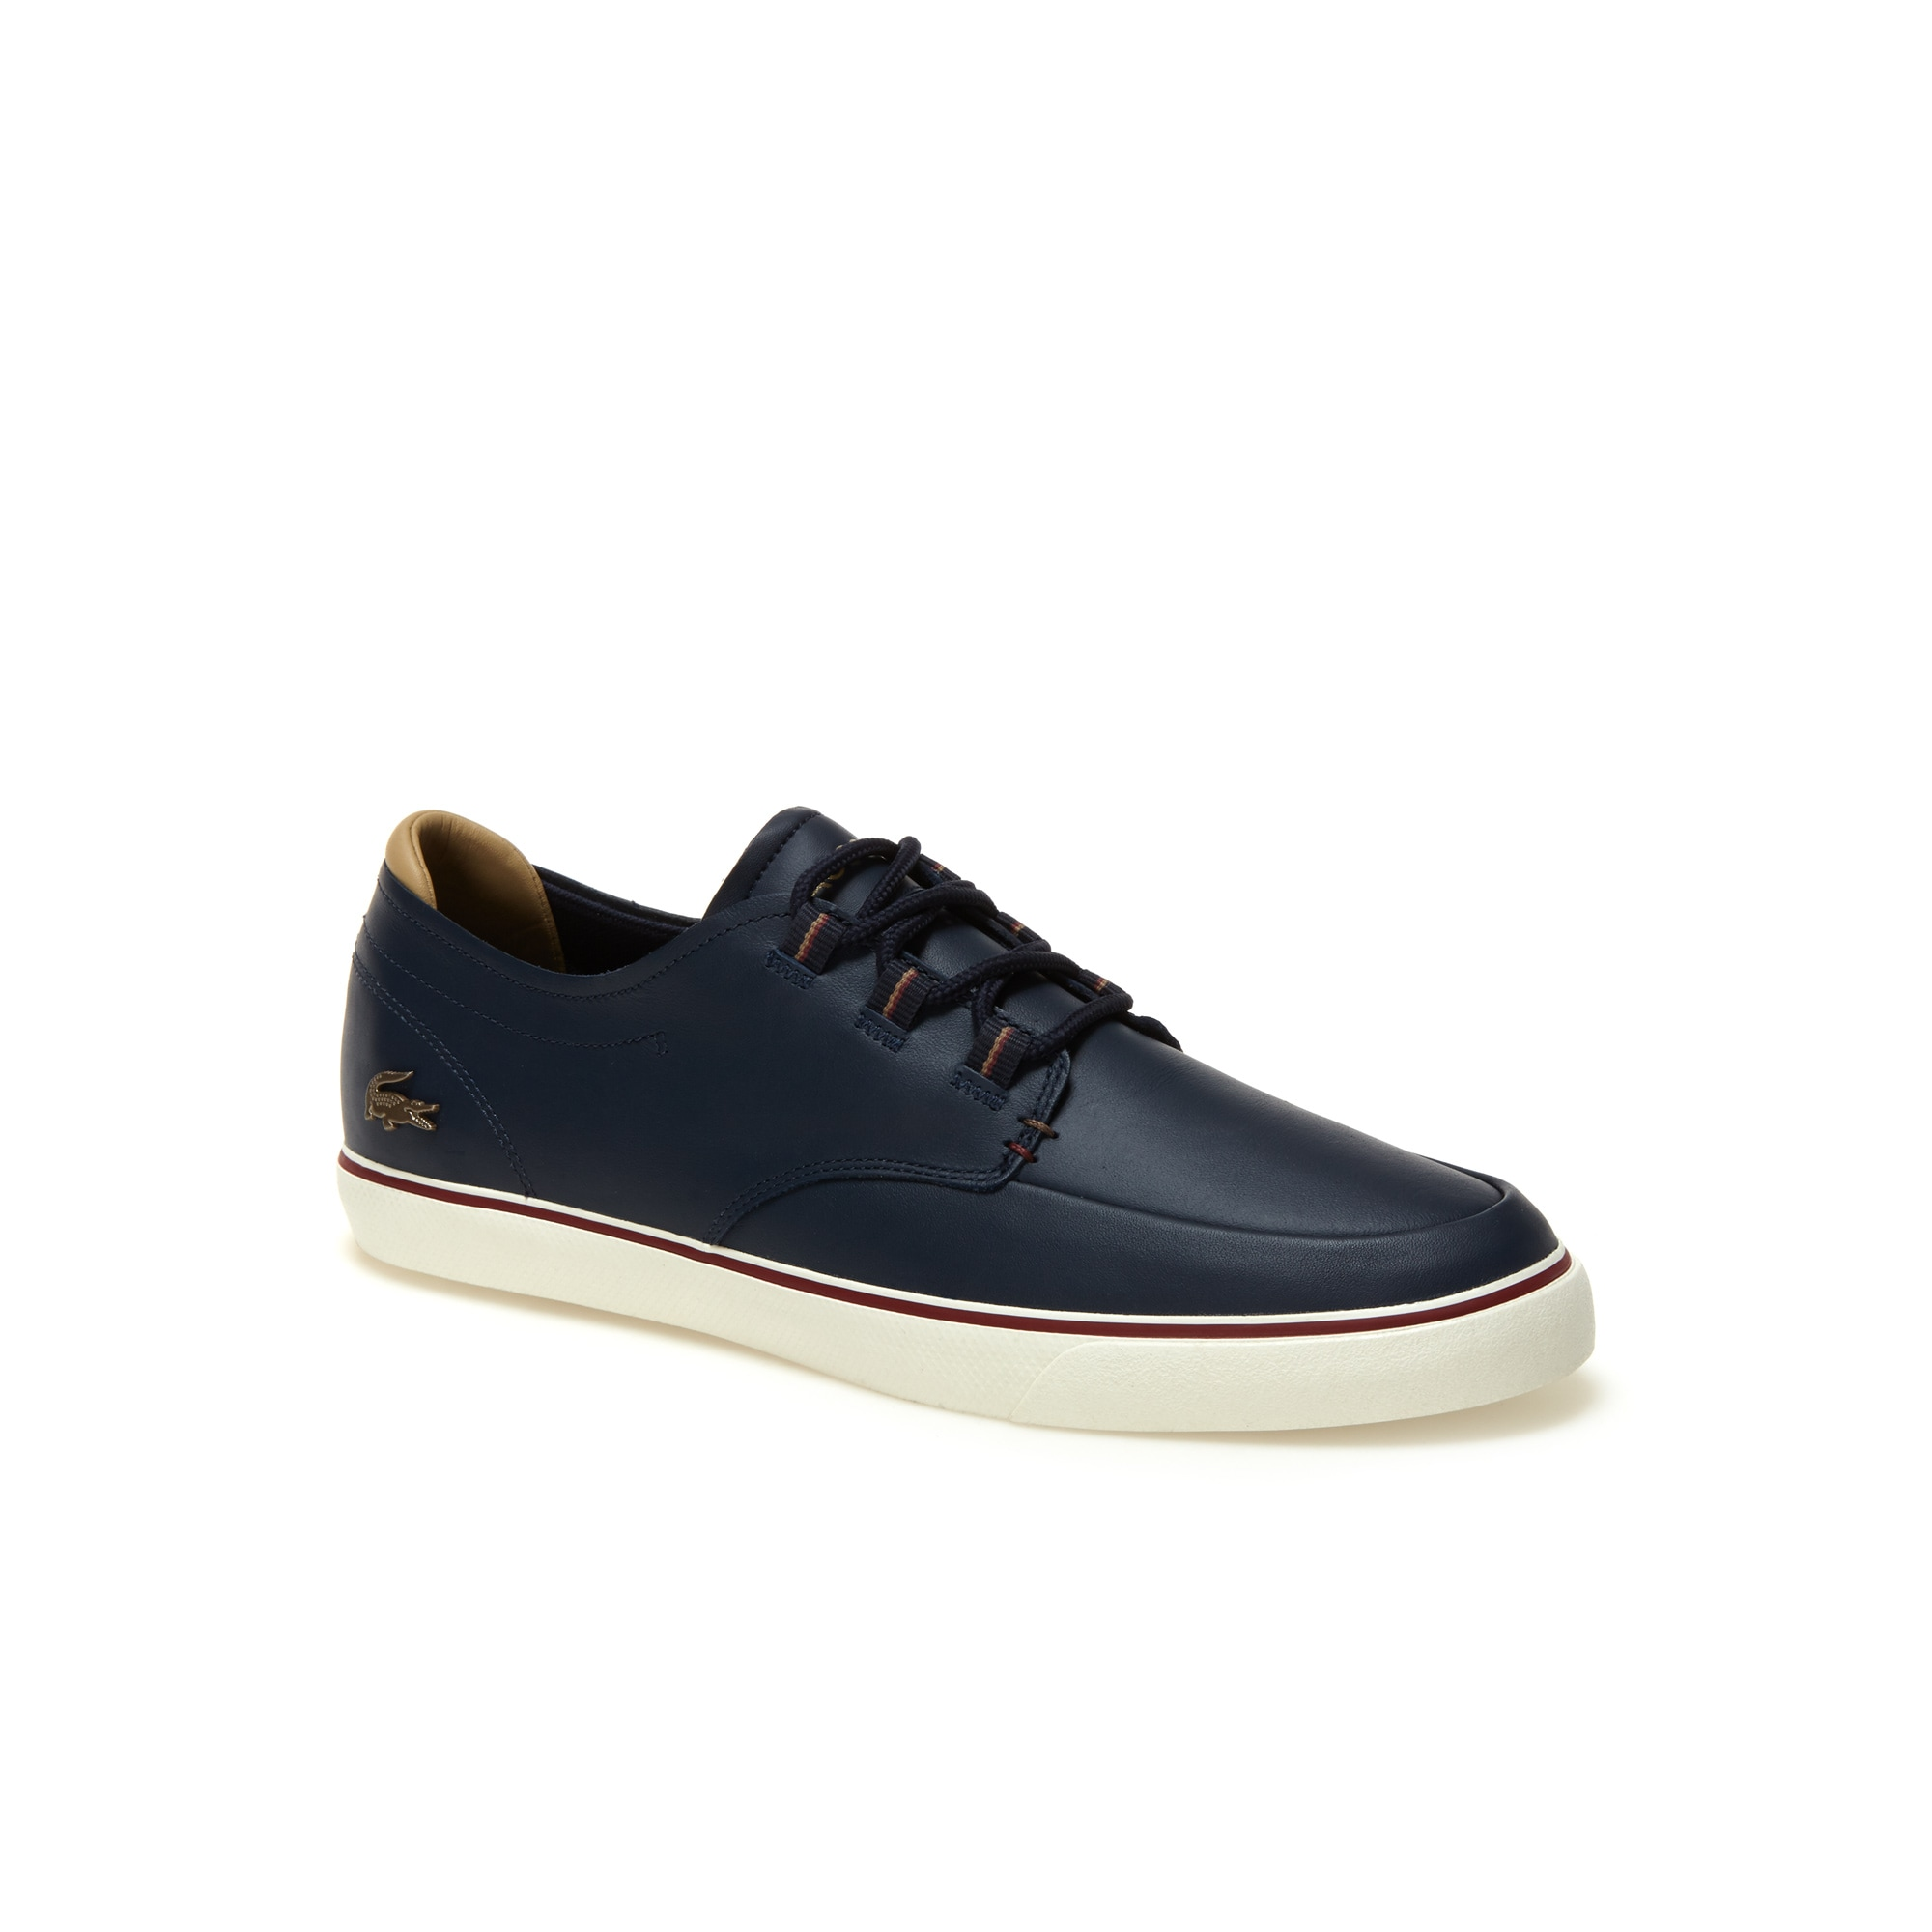 Esparre Deck herensneakers van leer